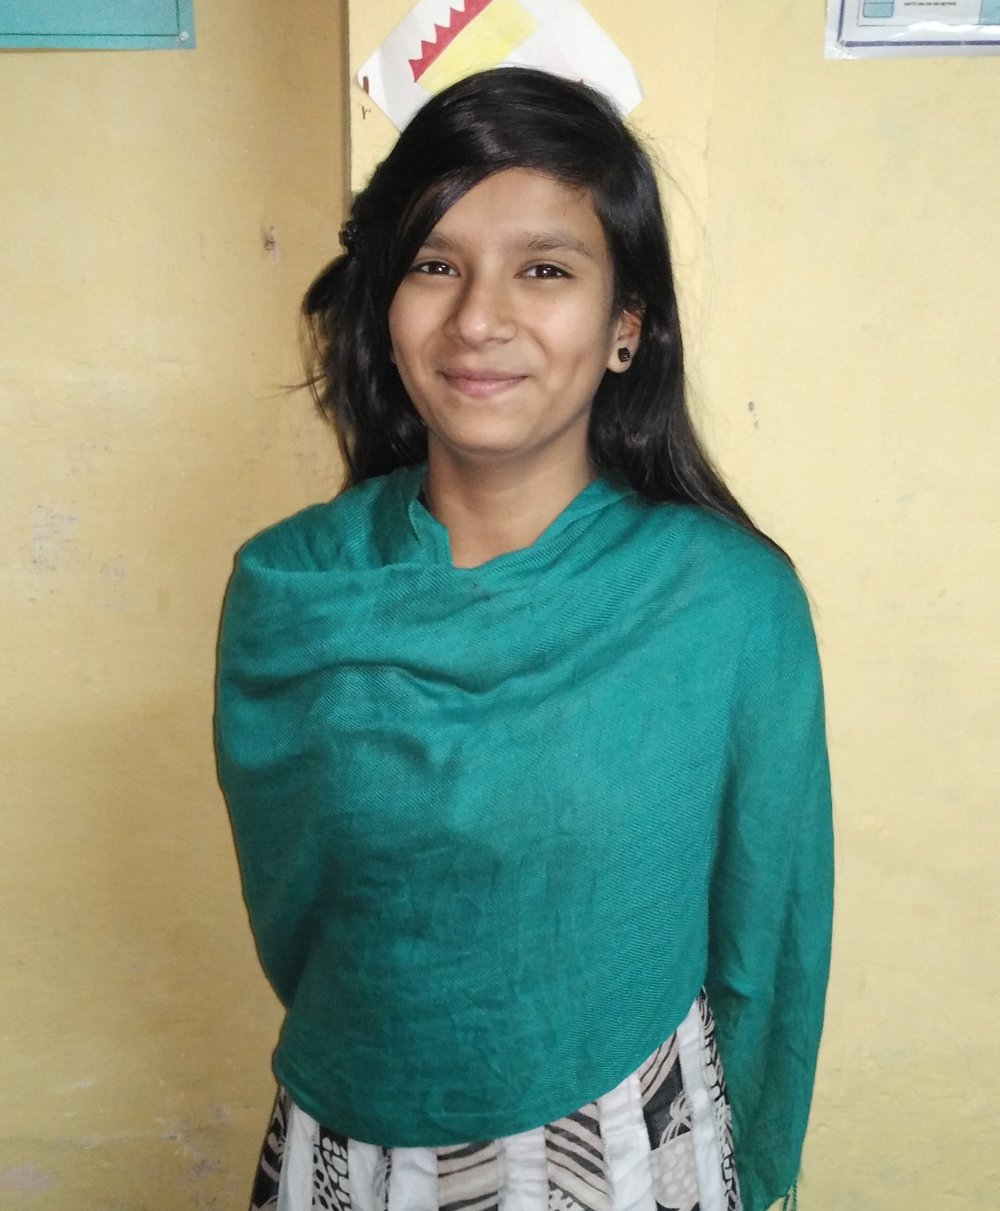 Iqra - Iqra is 14 years old and studies in class 9. She has been with TYPF since 2014. Before becoming a Youth Leader in 2015, Iqra was a participant in our Blending Spectrum programme. Iqra was part of the 'Safe Cities' mapping project where she was involved in mapping safety within and around her community.